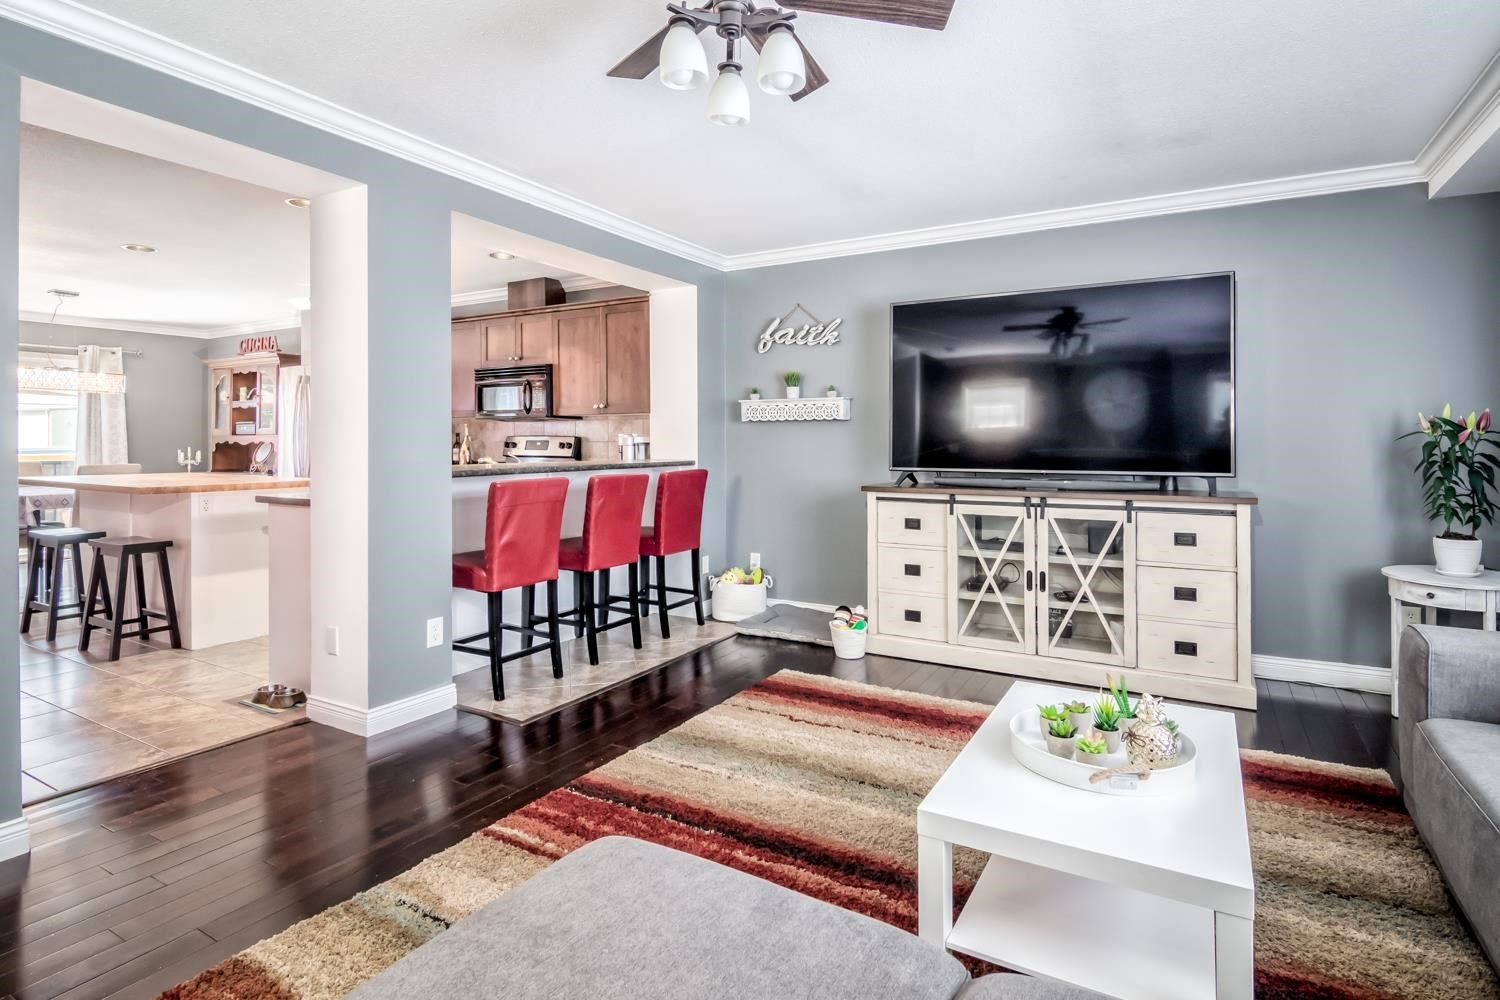 """Main Photo: 15 8880 NOWELL Street in Chilliwack: Chilliwack E Young-Yale Townhouse for sale in """"PARKSIDE"""" : MLS®# R2596028"""